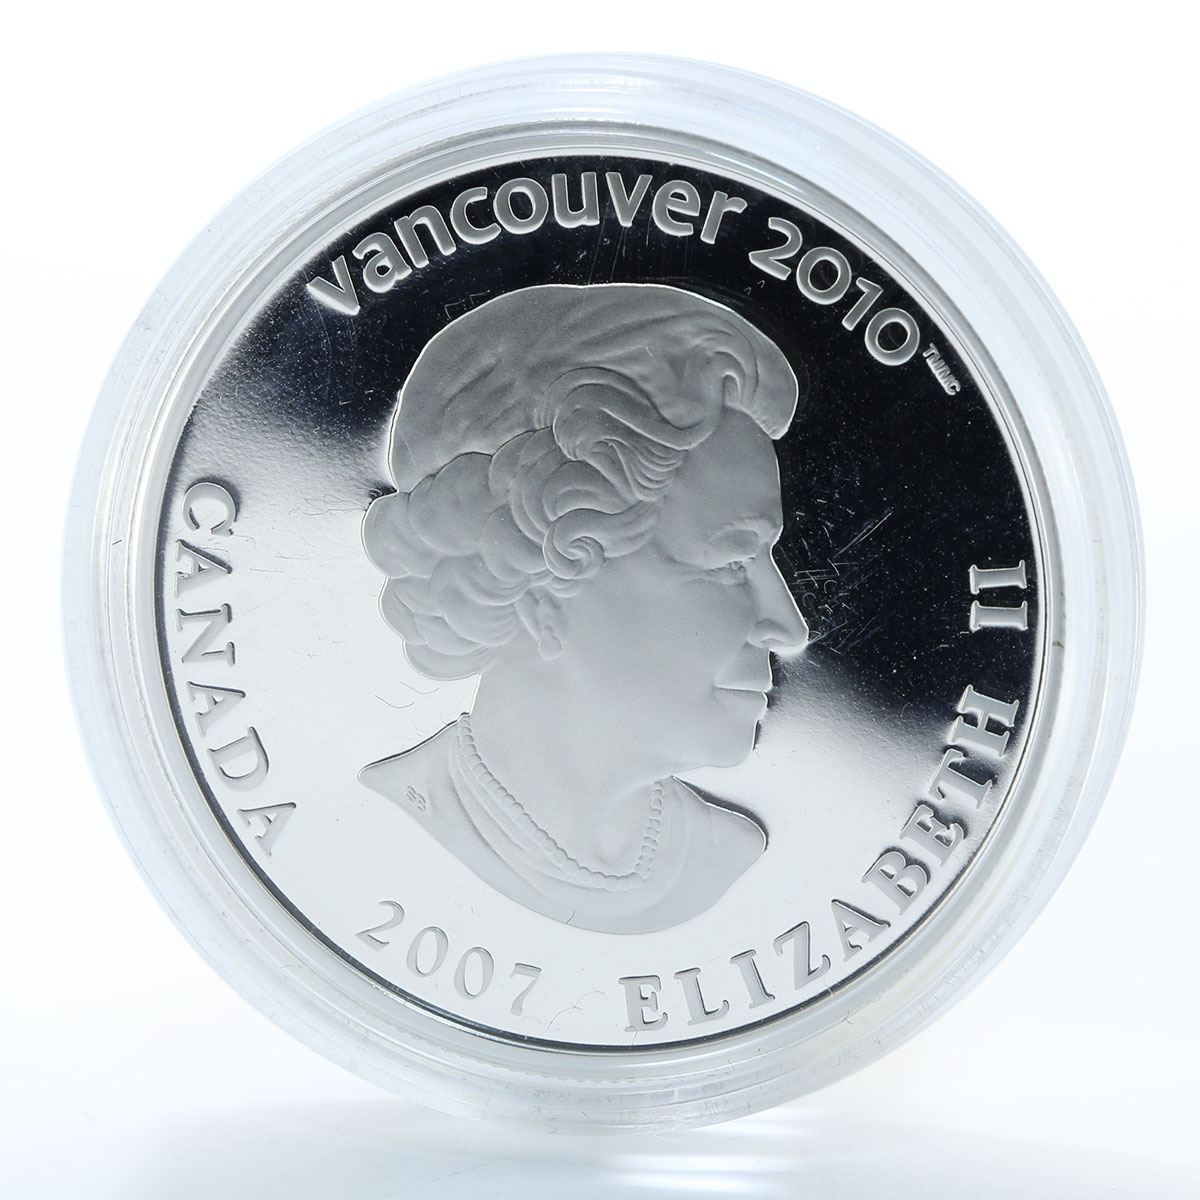 Canada 25 dollars Biathlon 2010 Winter Olympics Vancouve silver proof 2007